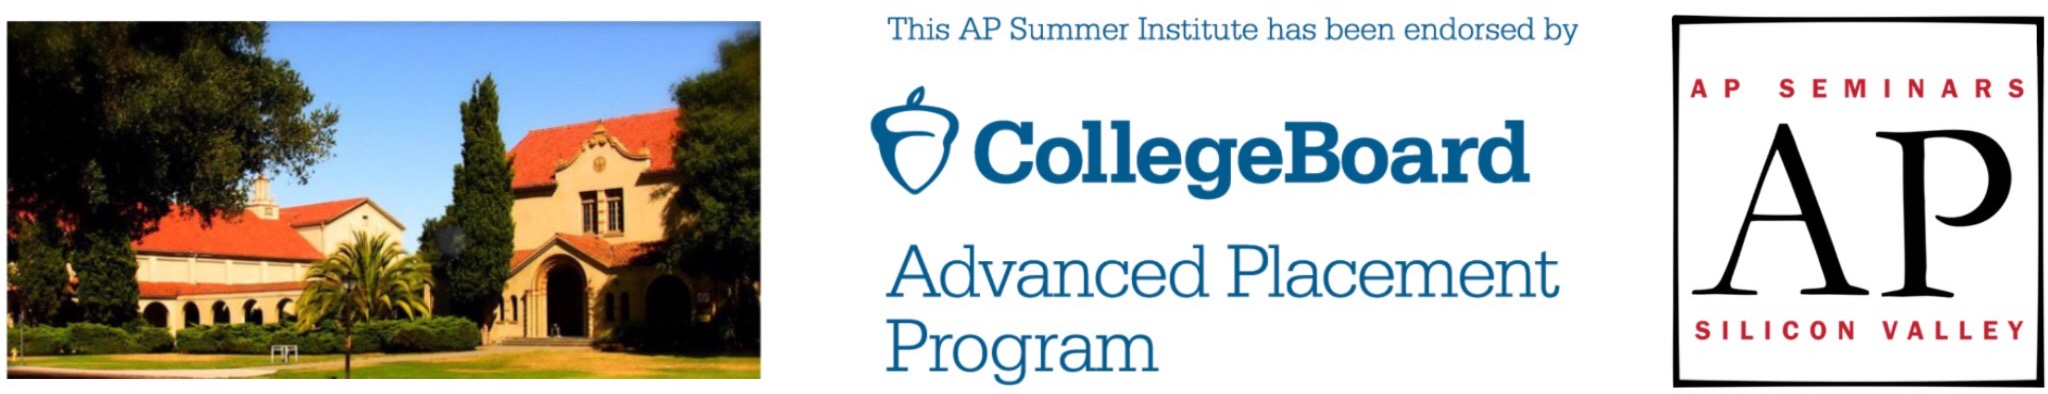 AP Seminars Silicon Valley Week 2 – ONLINE (7/27/20-7/31/20)